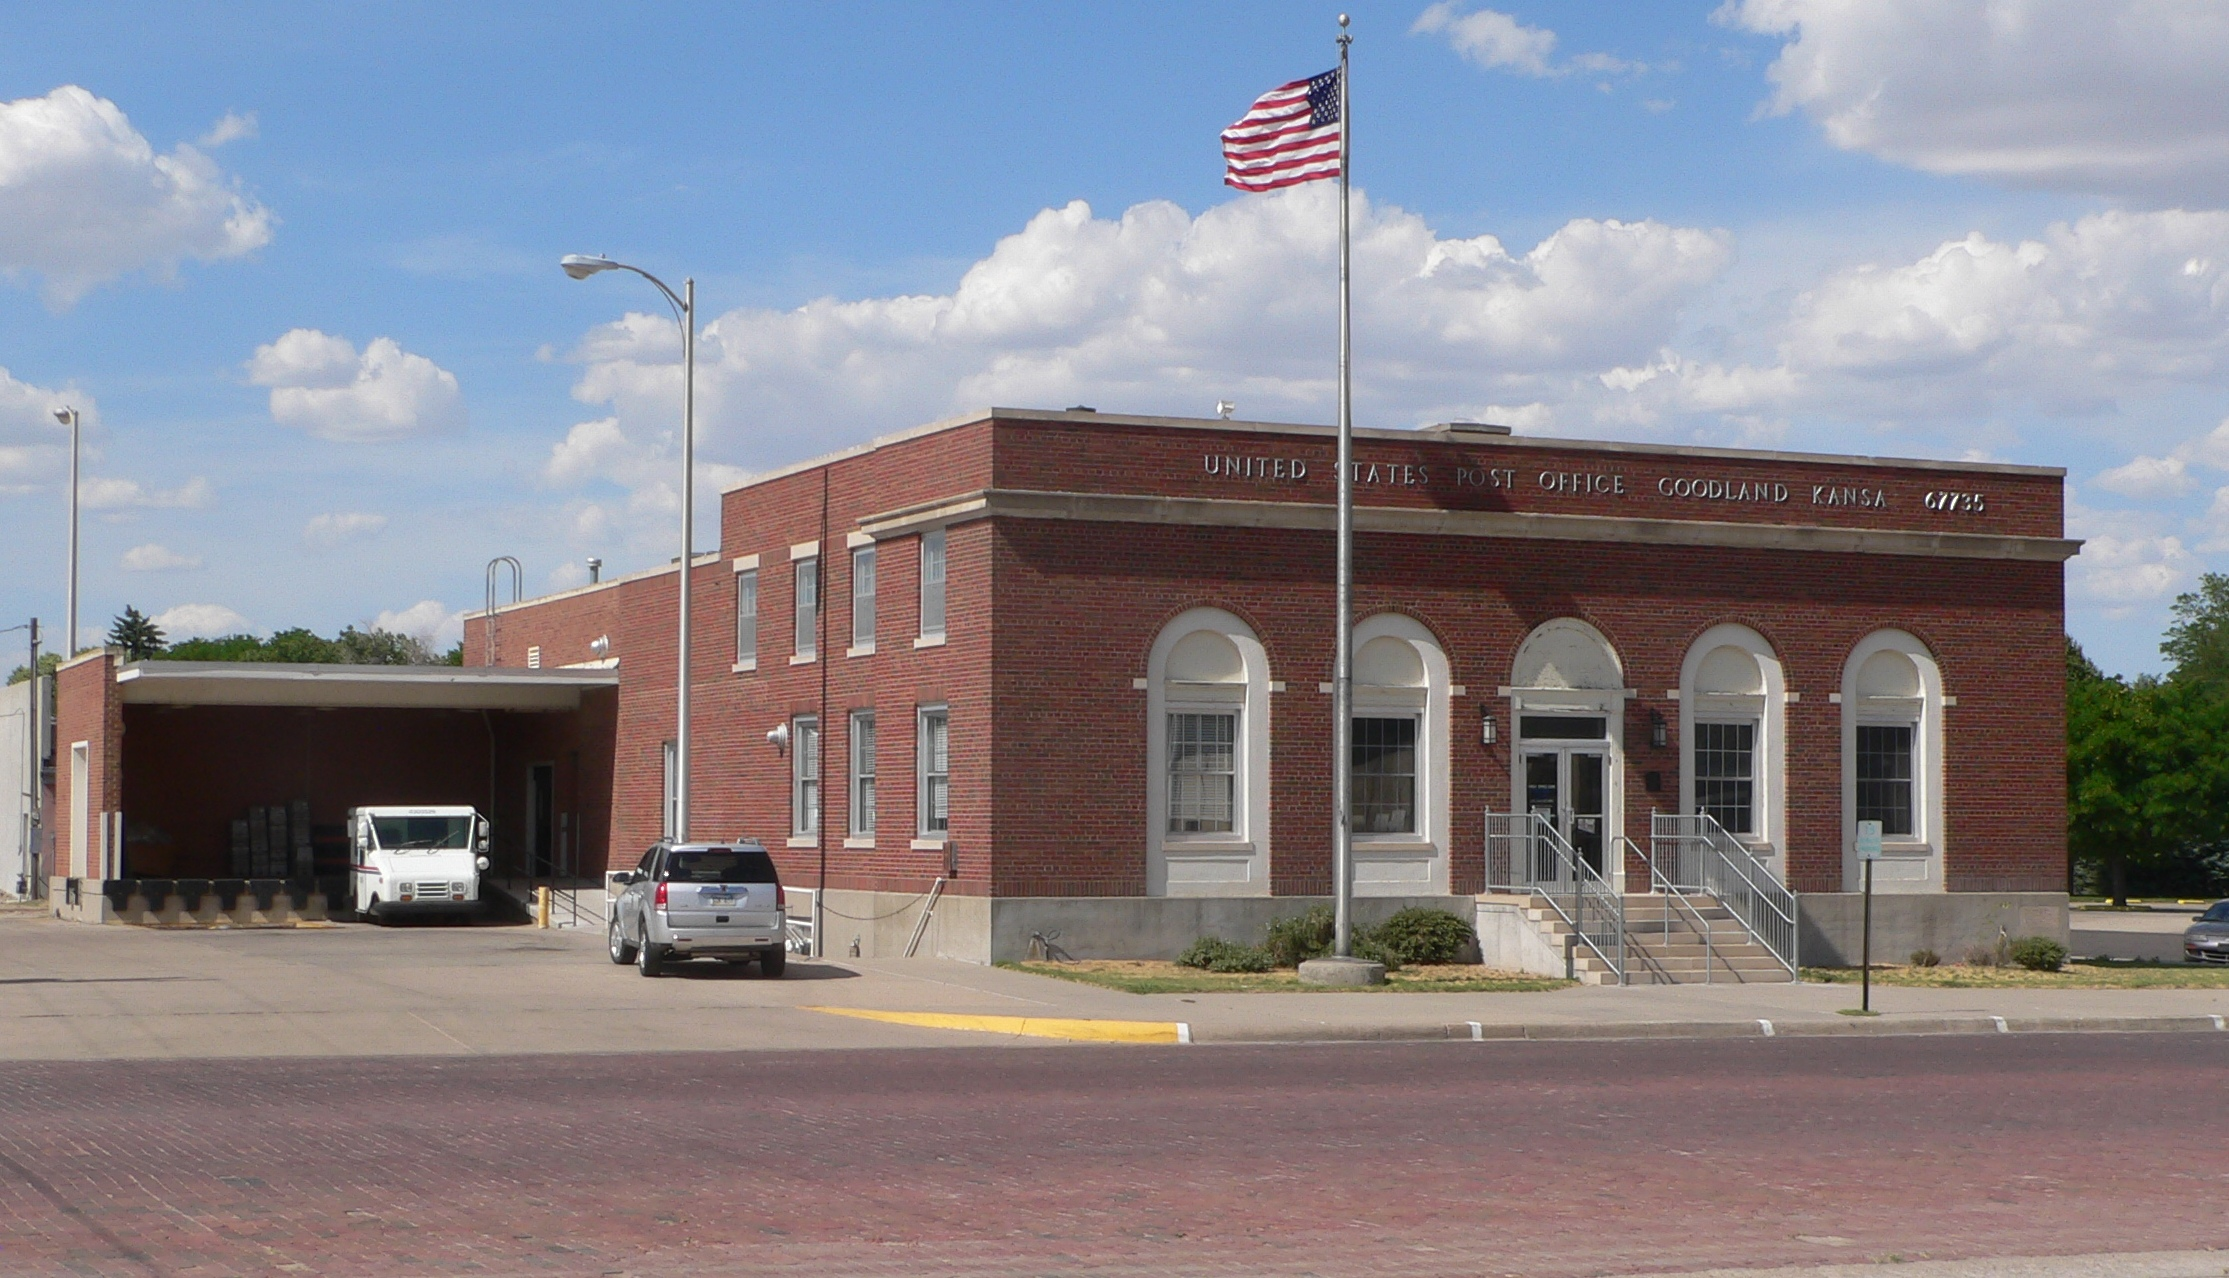 Goodland Ks United States Pictures Citiestips Com